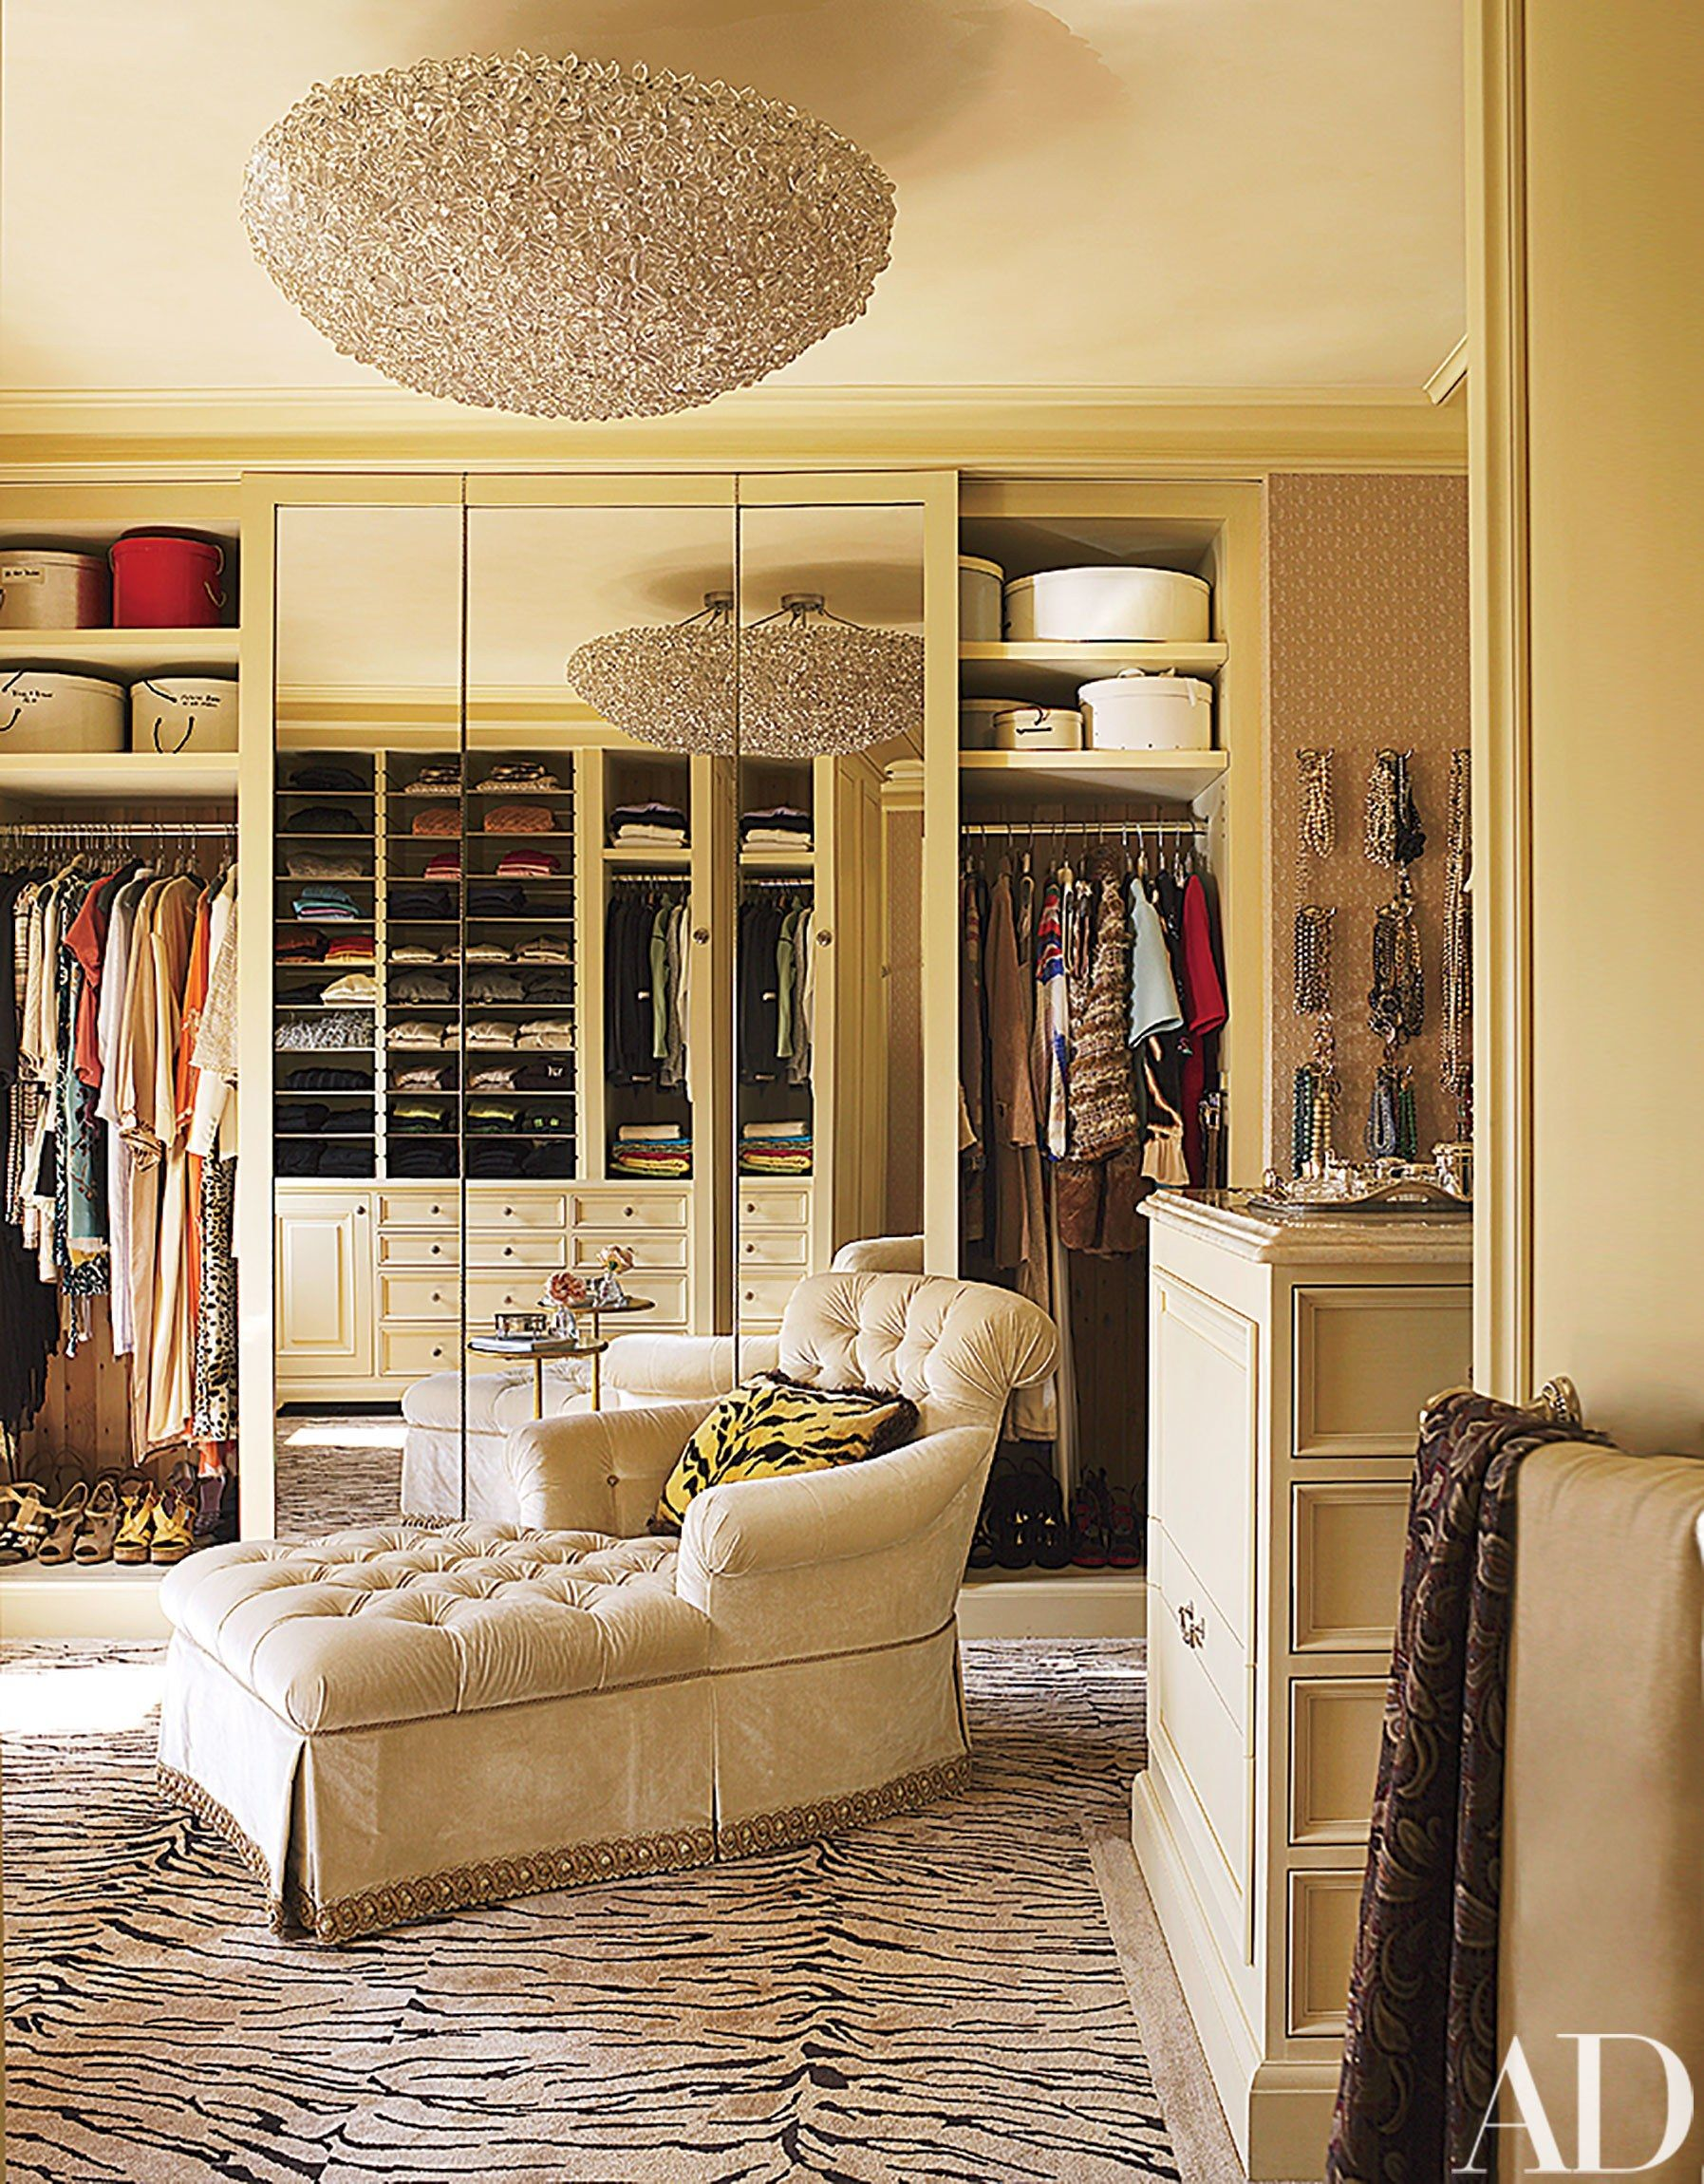 Loft bedroom with walk in wardrobe  A NeoclassicalStyle Residence in San Francisco is Refreshed with